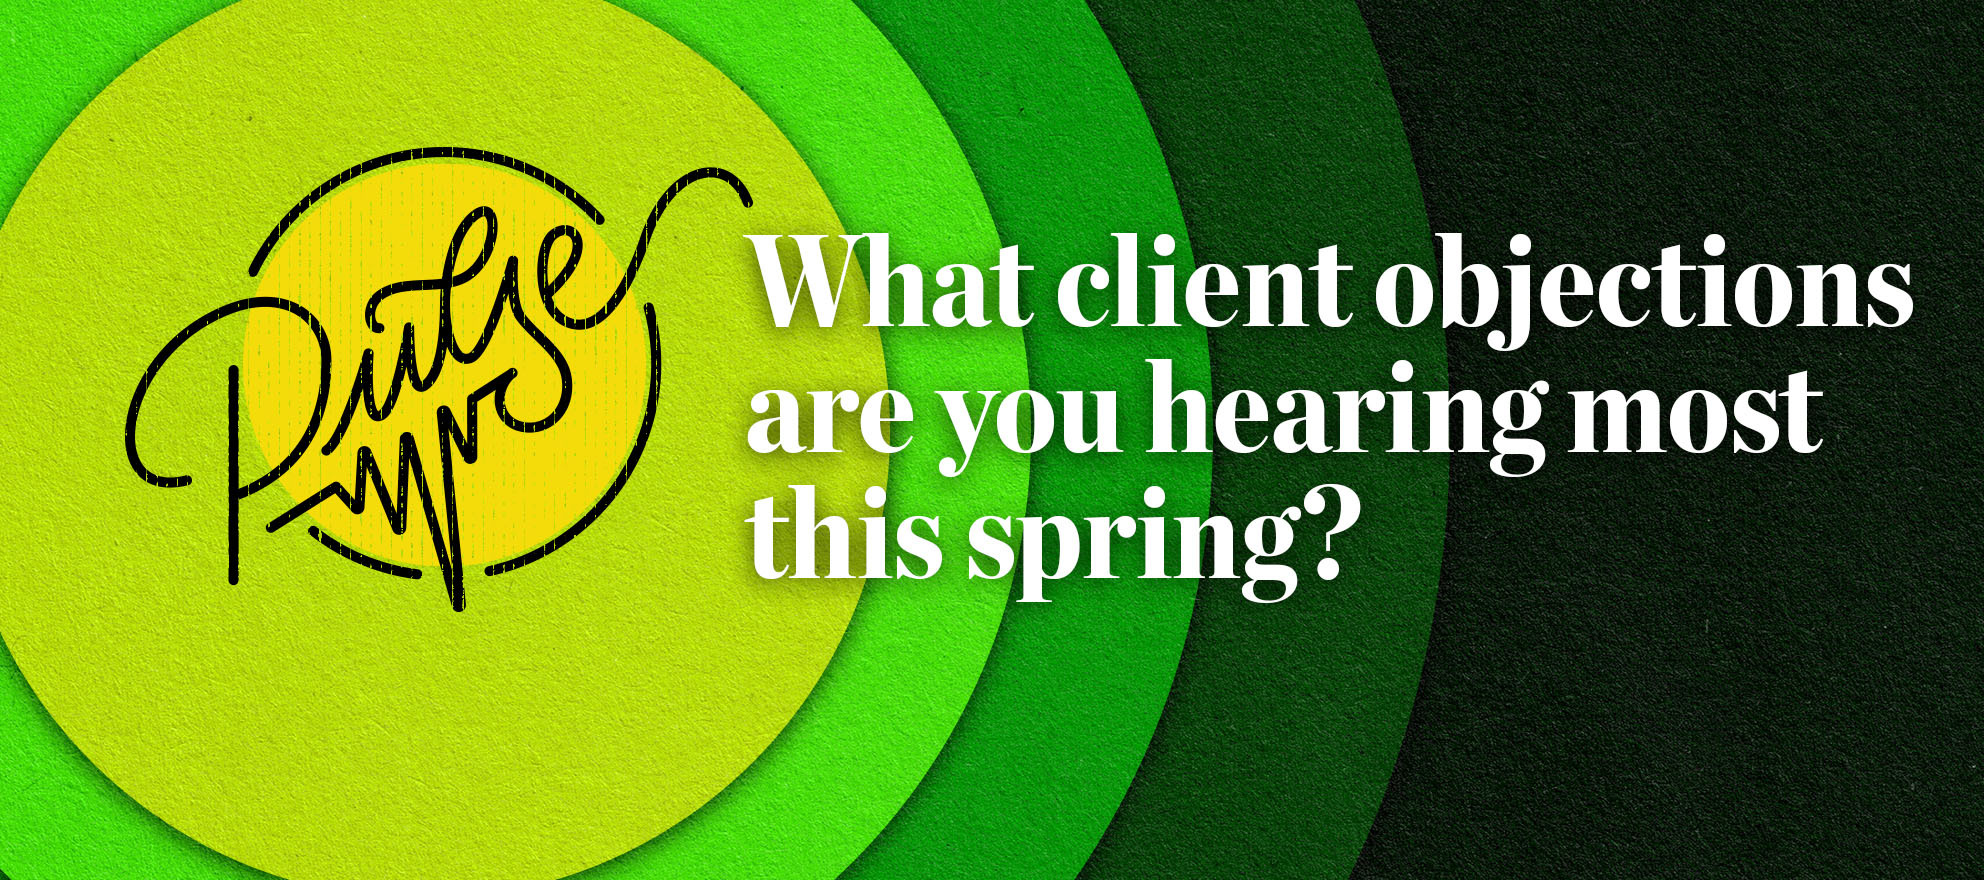 Pulse: What client objections are you hearing most this spring?